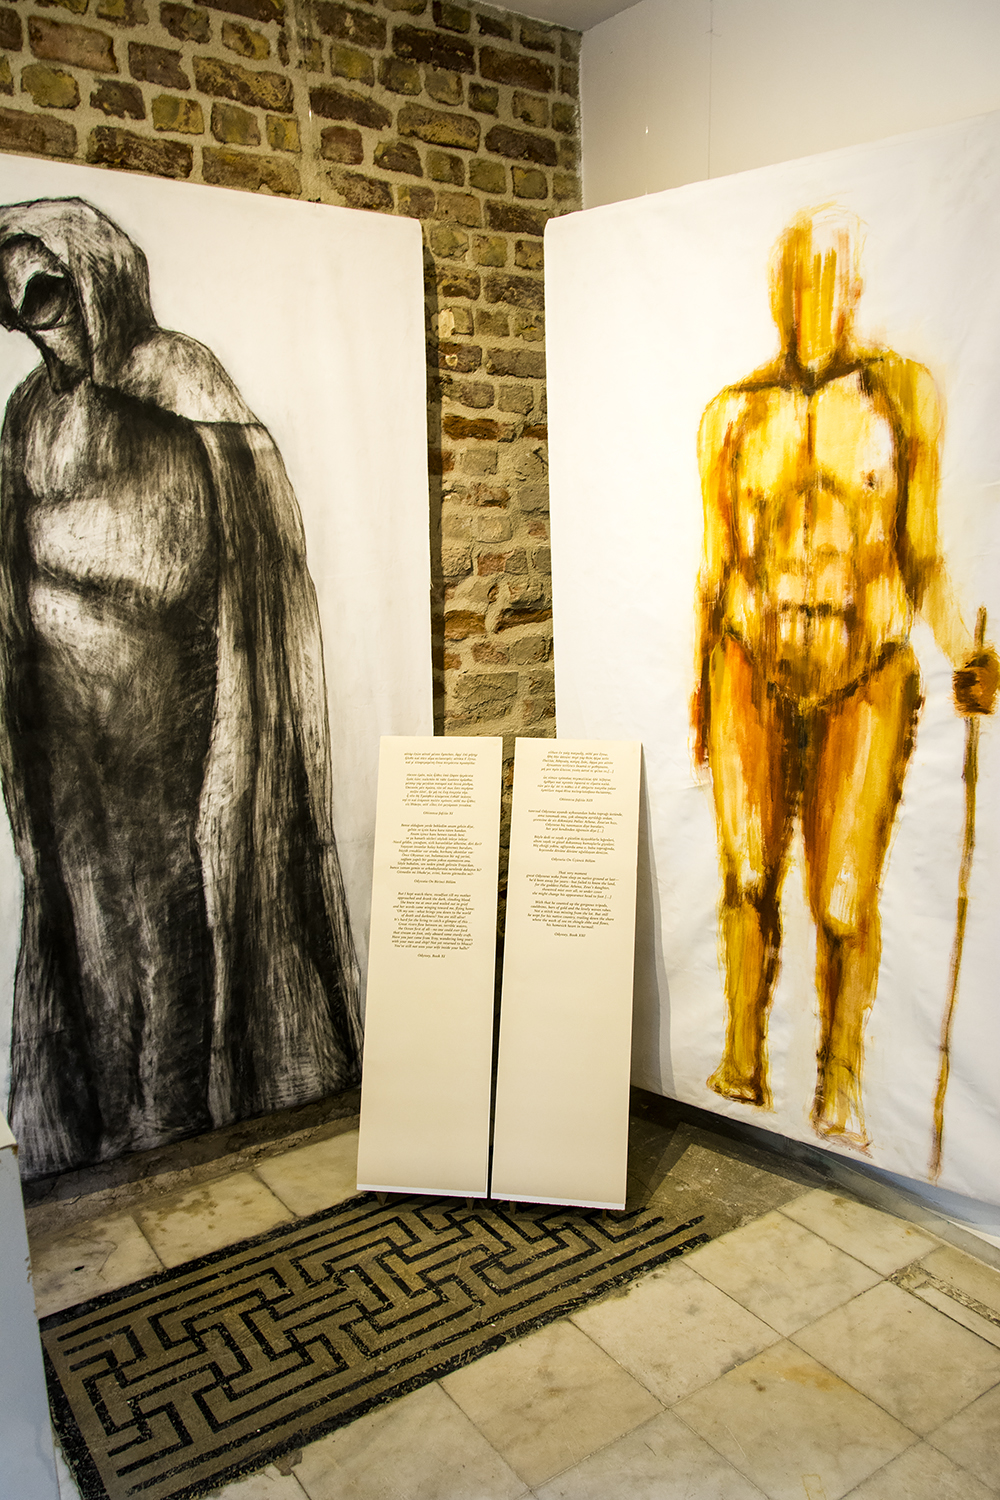 Ulysses (pigment and glue on canvas) on the right, Ulysses's mother Anticleia (compressed charcoal on canvas) on the left, at Tasarım Bakkalı.